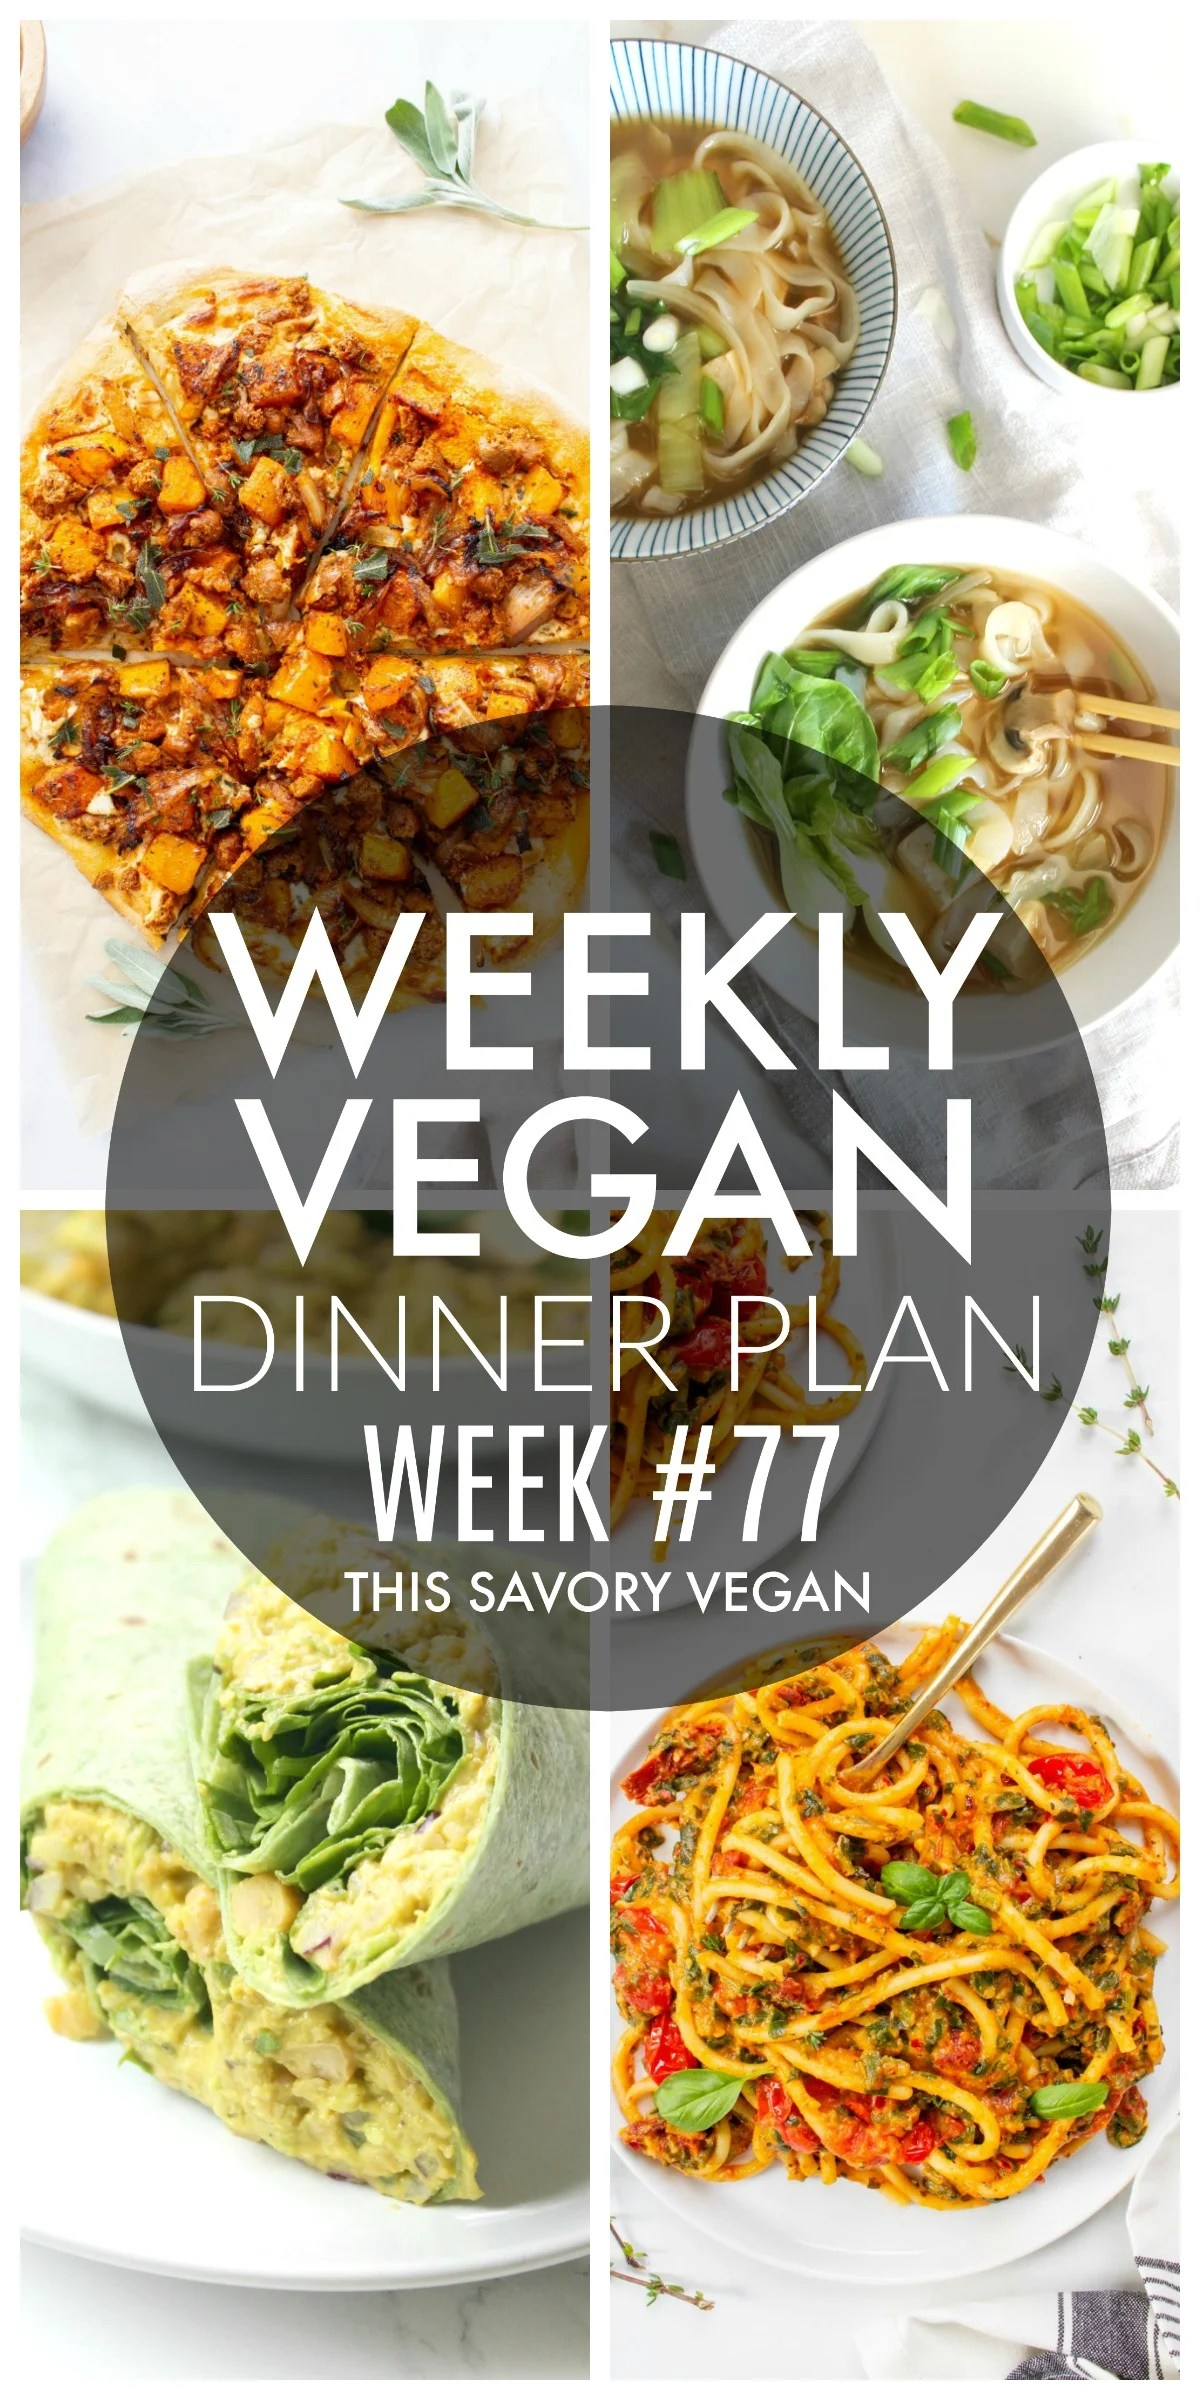 Weekly Vegan Dinner Plan #77 - five nights worth of vegan dinners to help inspire your menu. Choose one recipe to add to your rotation or make them all - shopping list included   ThisSavoryVegan.com #thissavoryvegan #mealprep #dinnerplan